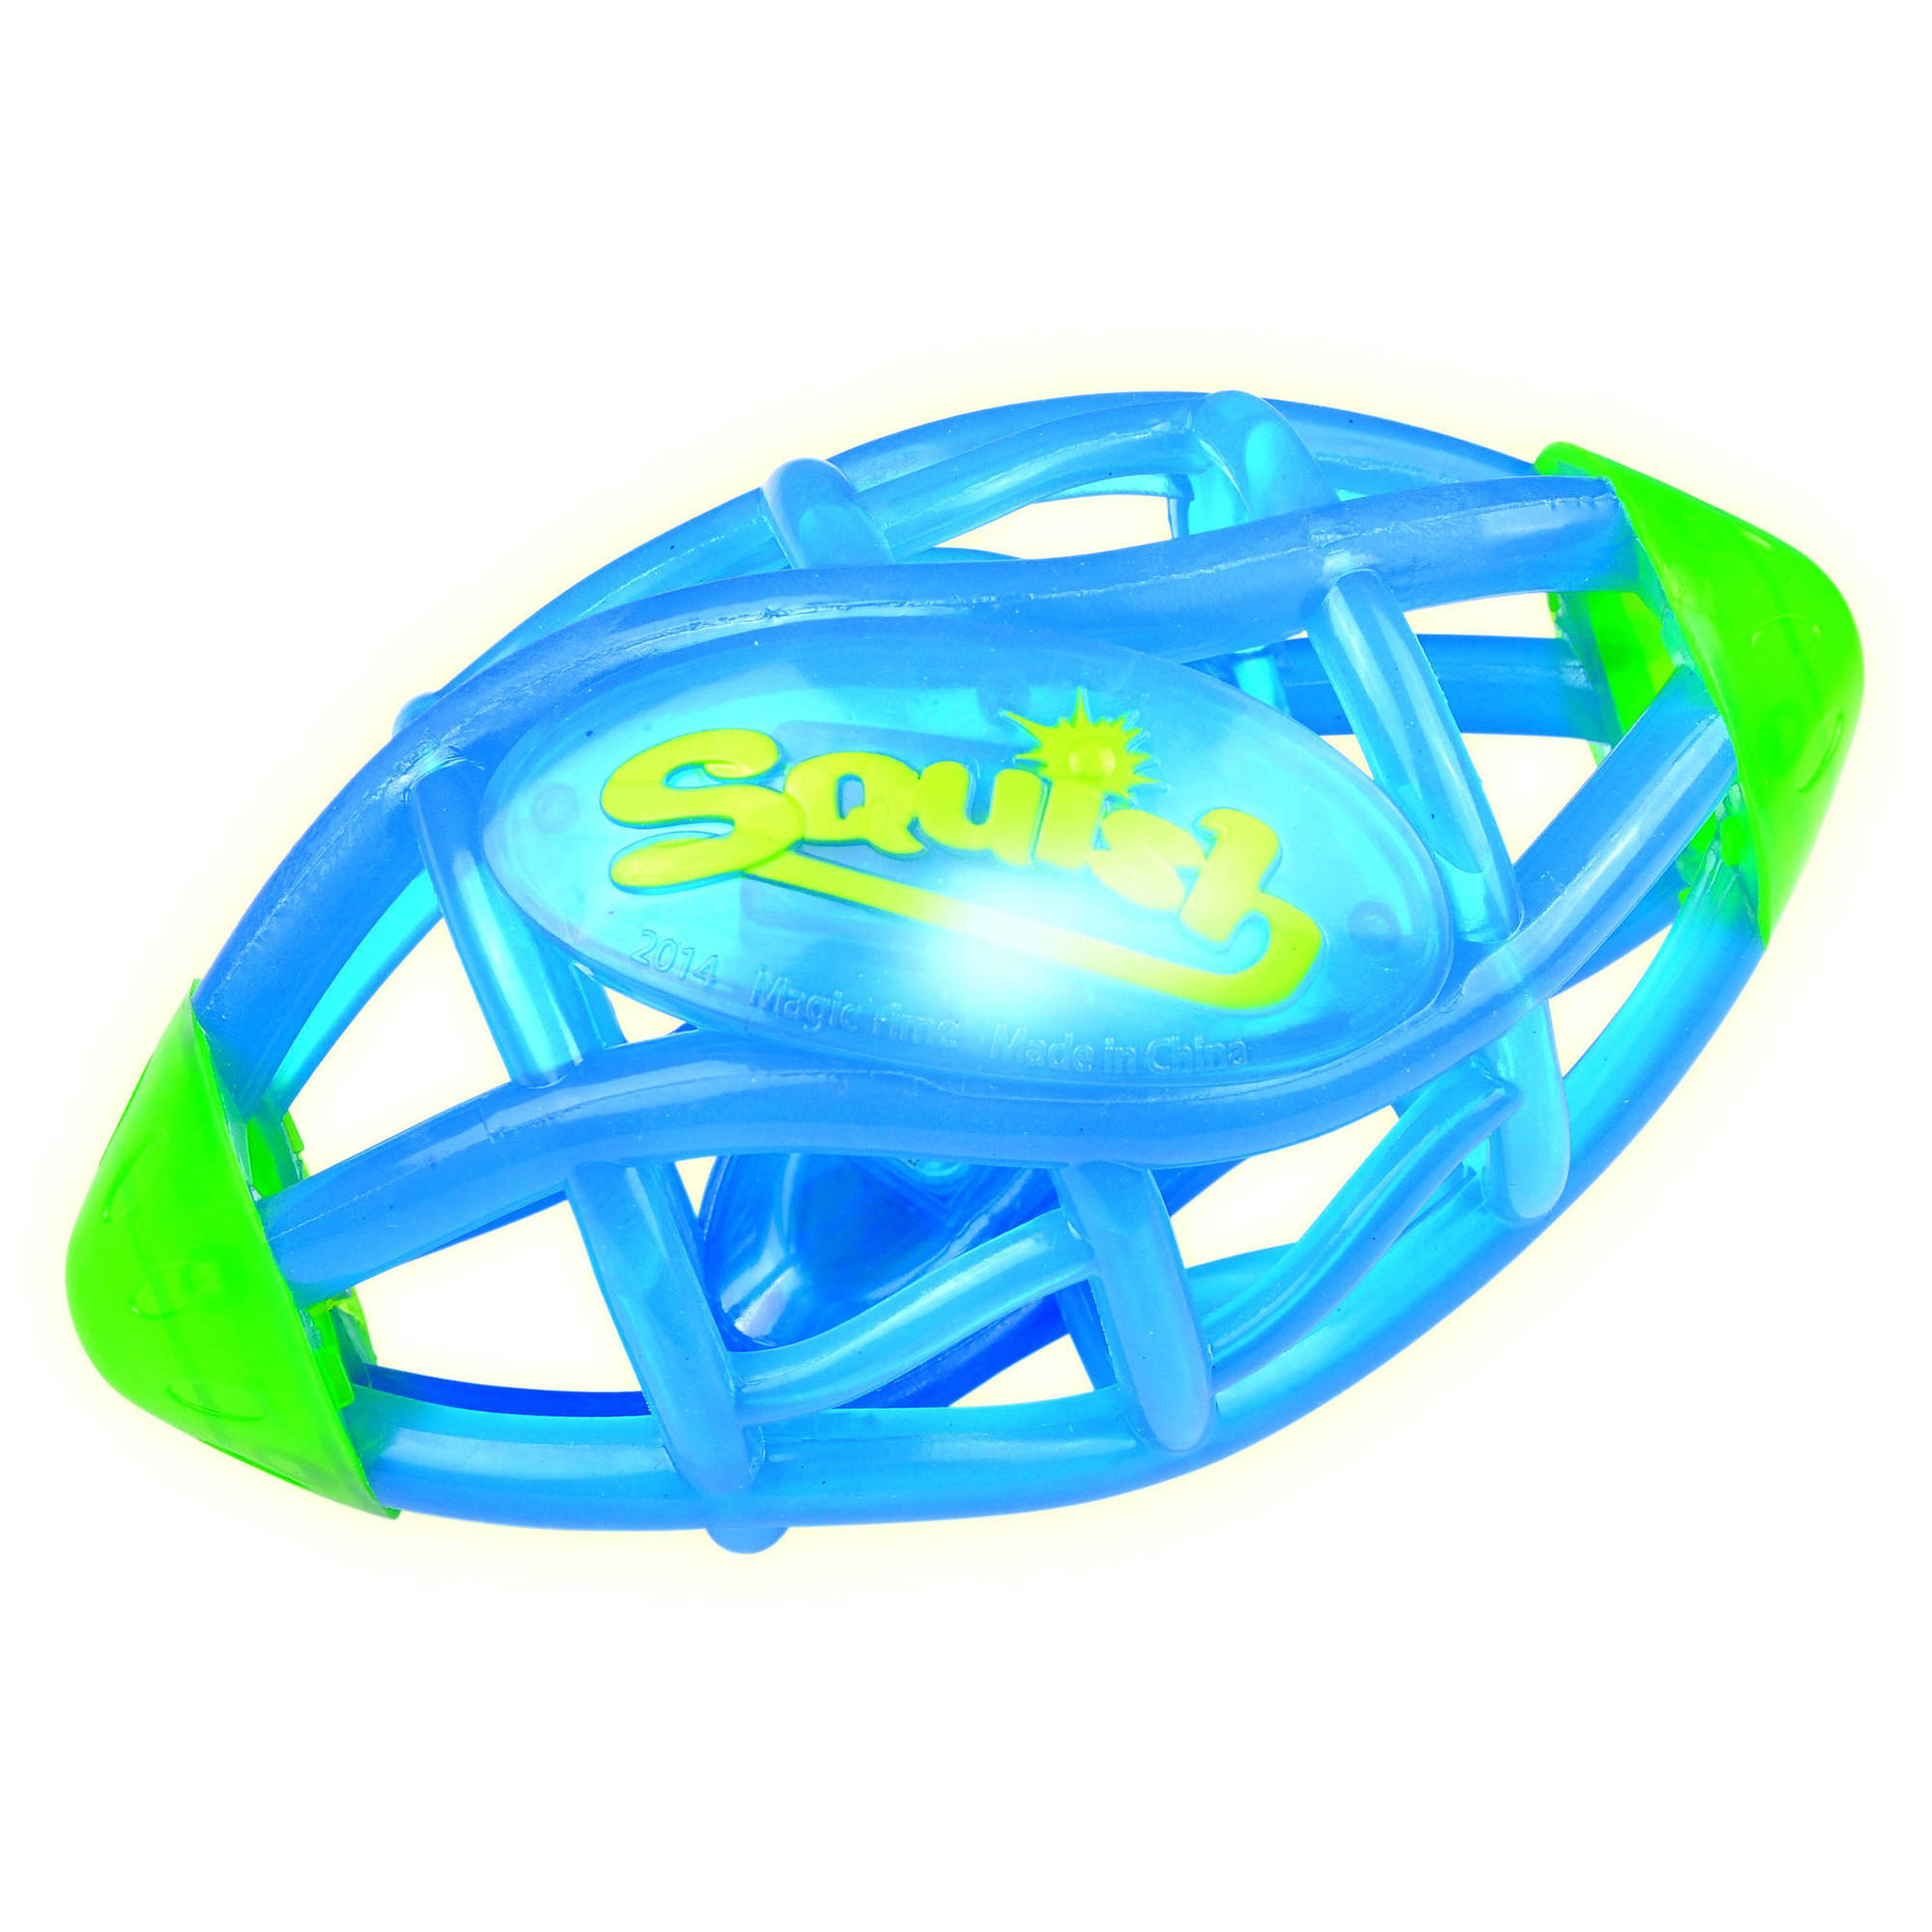 Squish Football by JIANG LIN PLASTIC MANUFACTURING LIMITED